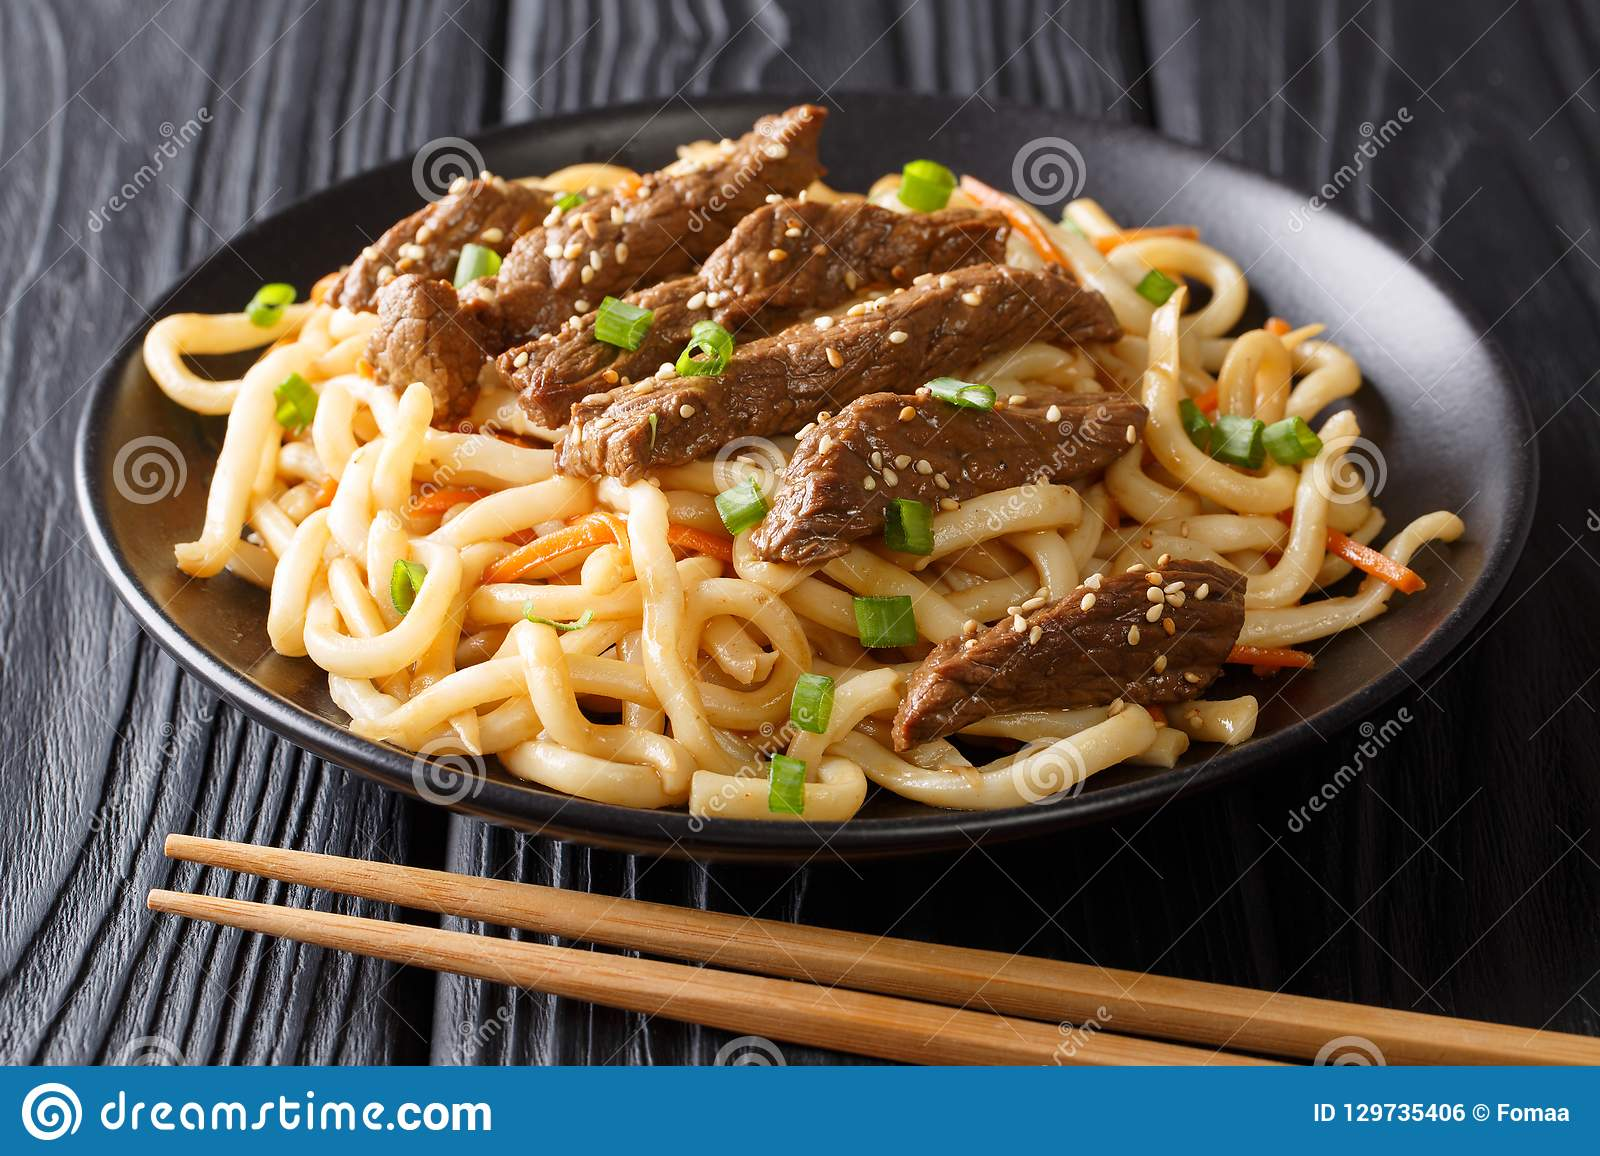 Stir Frying Teriyaki Beef With Udon Noodles Carrots And Sesame Stock Photo Image Of Homemade Chinese 129735406,Grout Removal Attachment